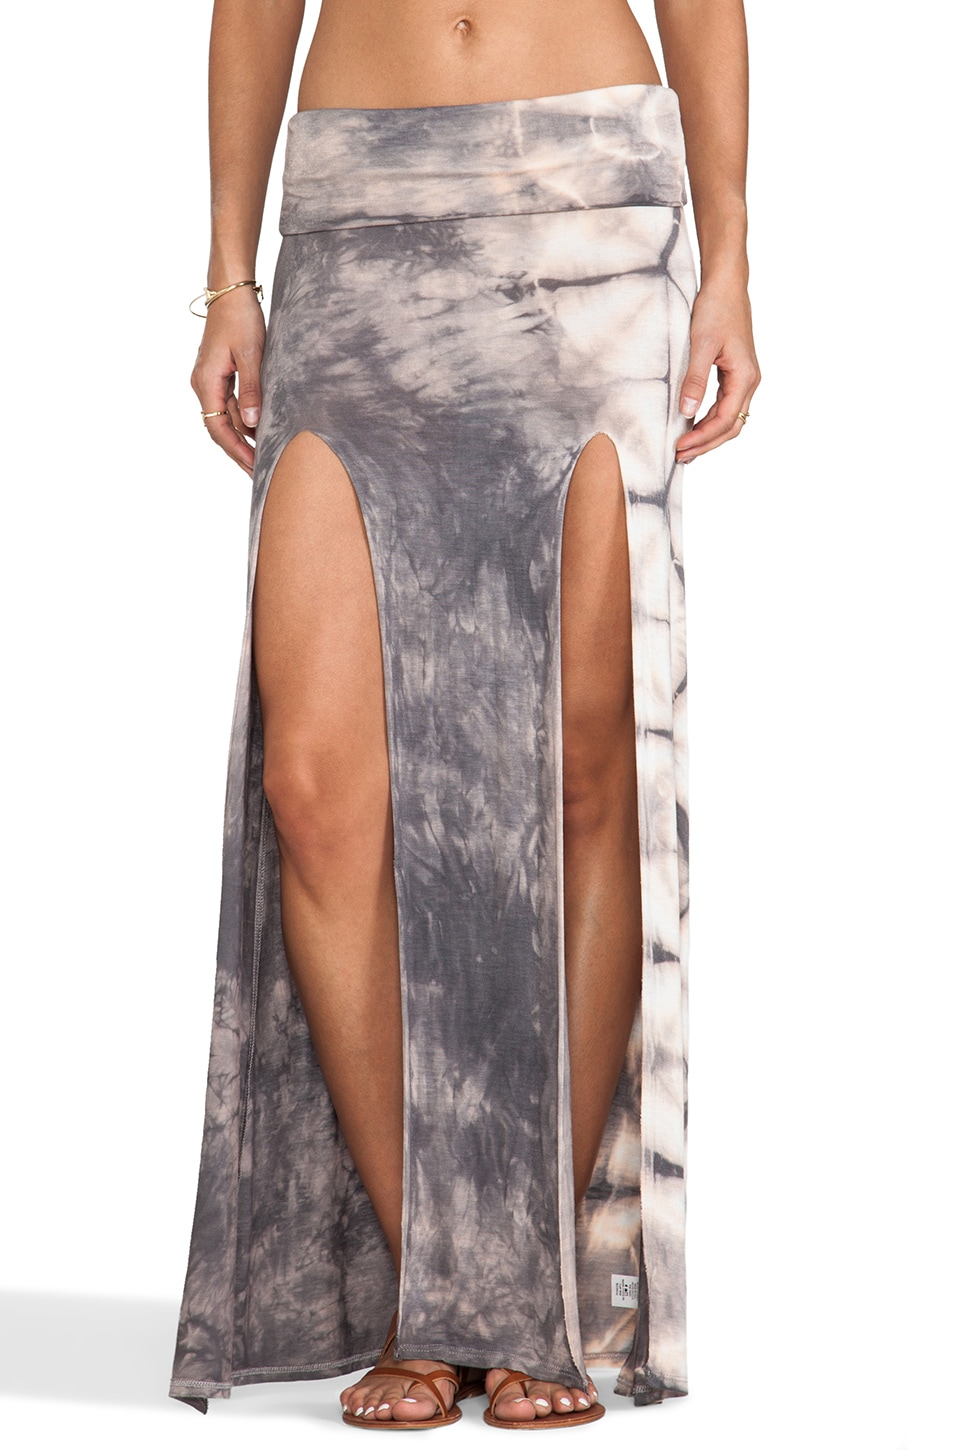 Surf Gypsy Tie Dye Slit Maxi Skirt in Grey